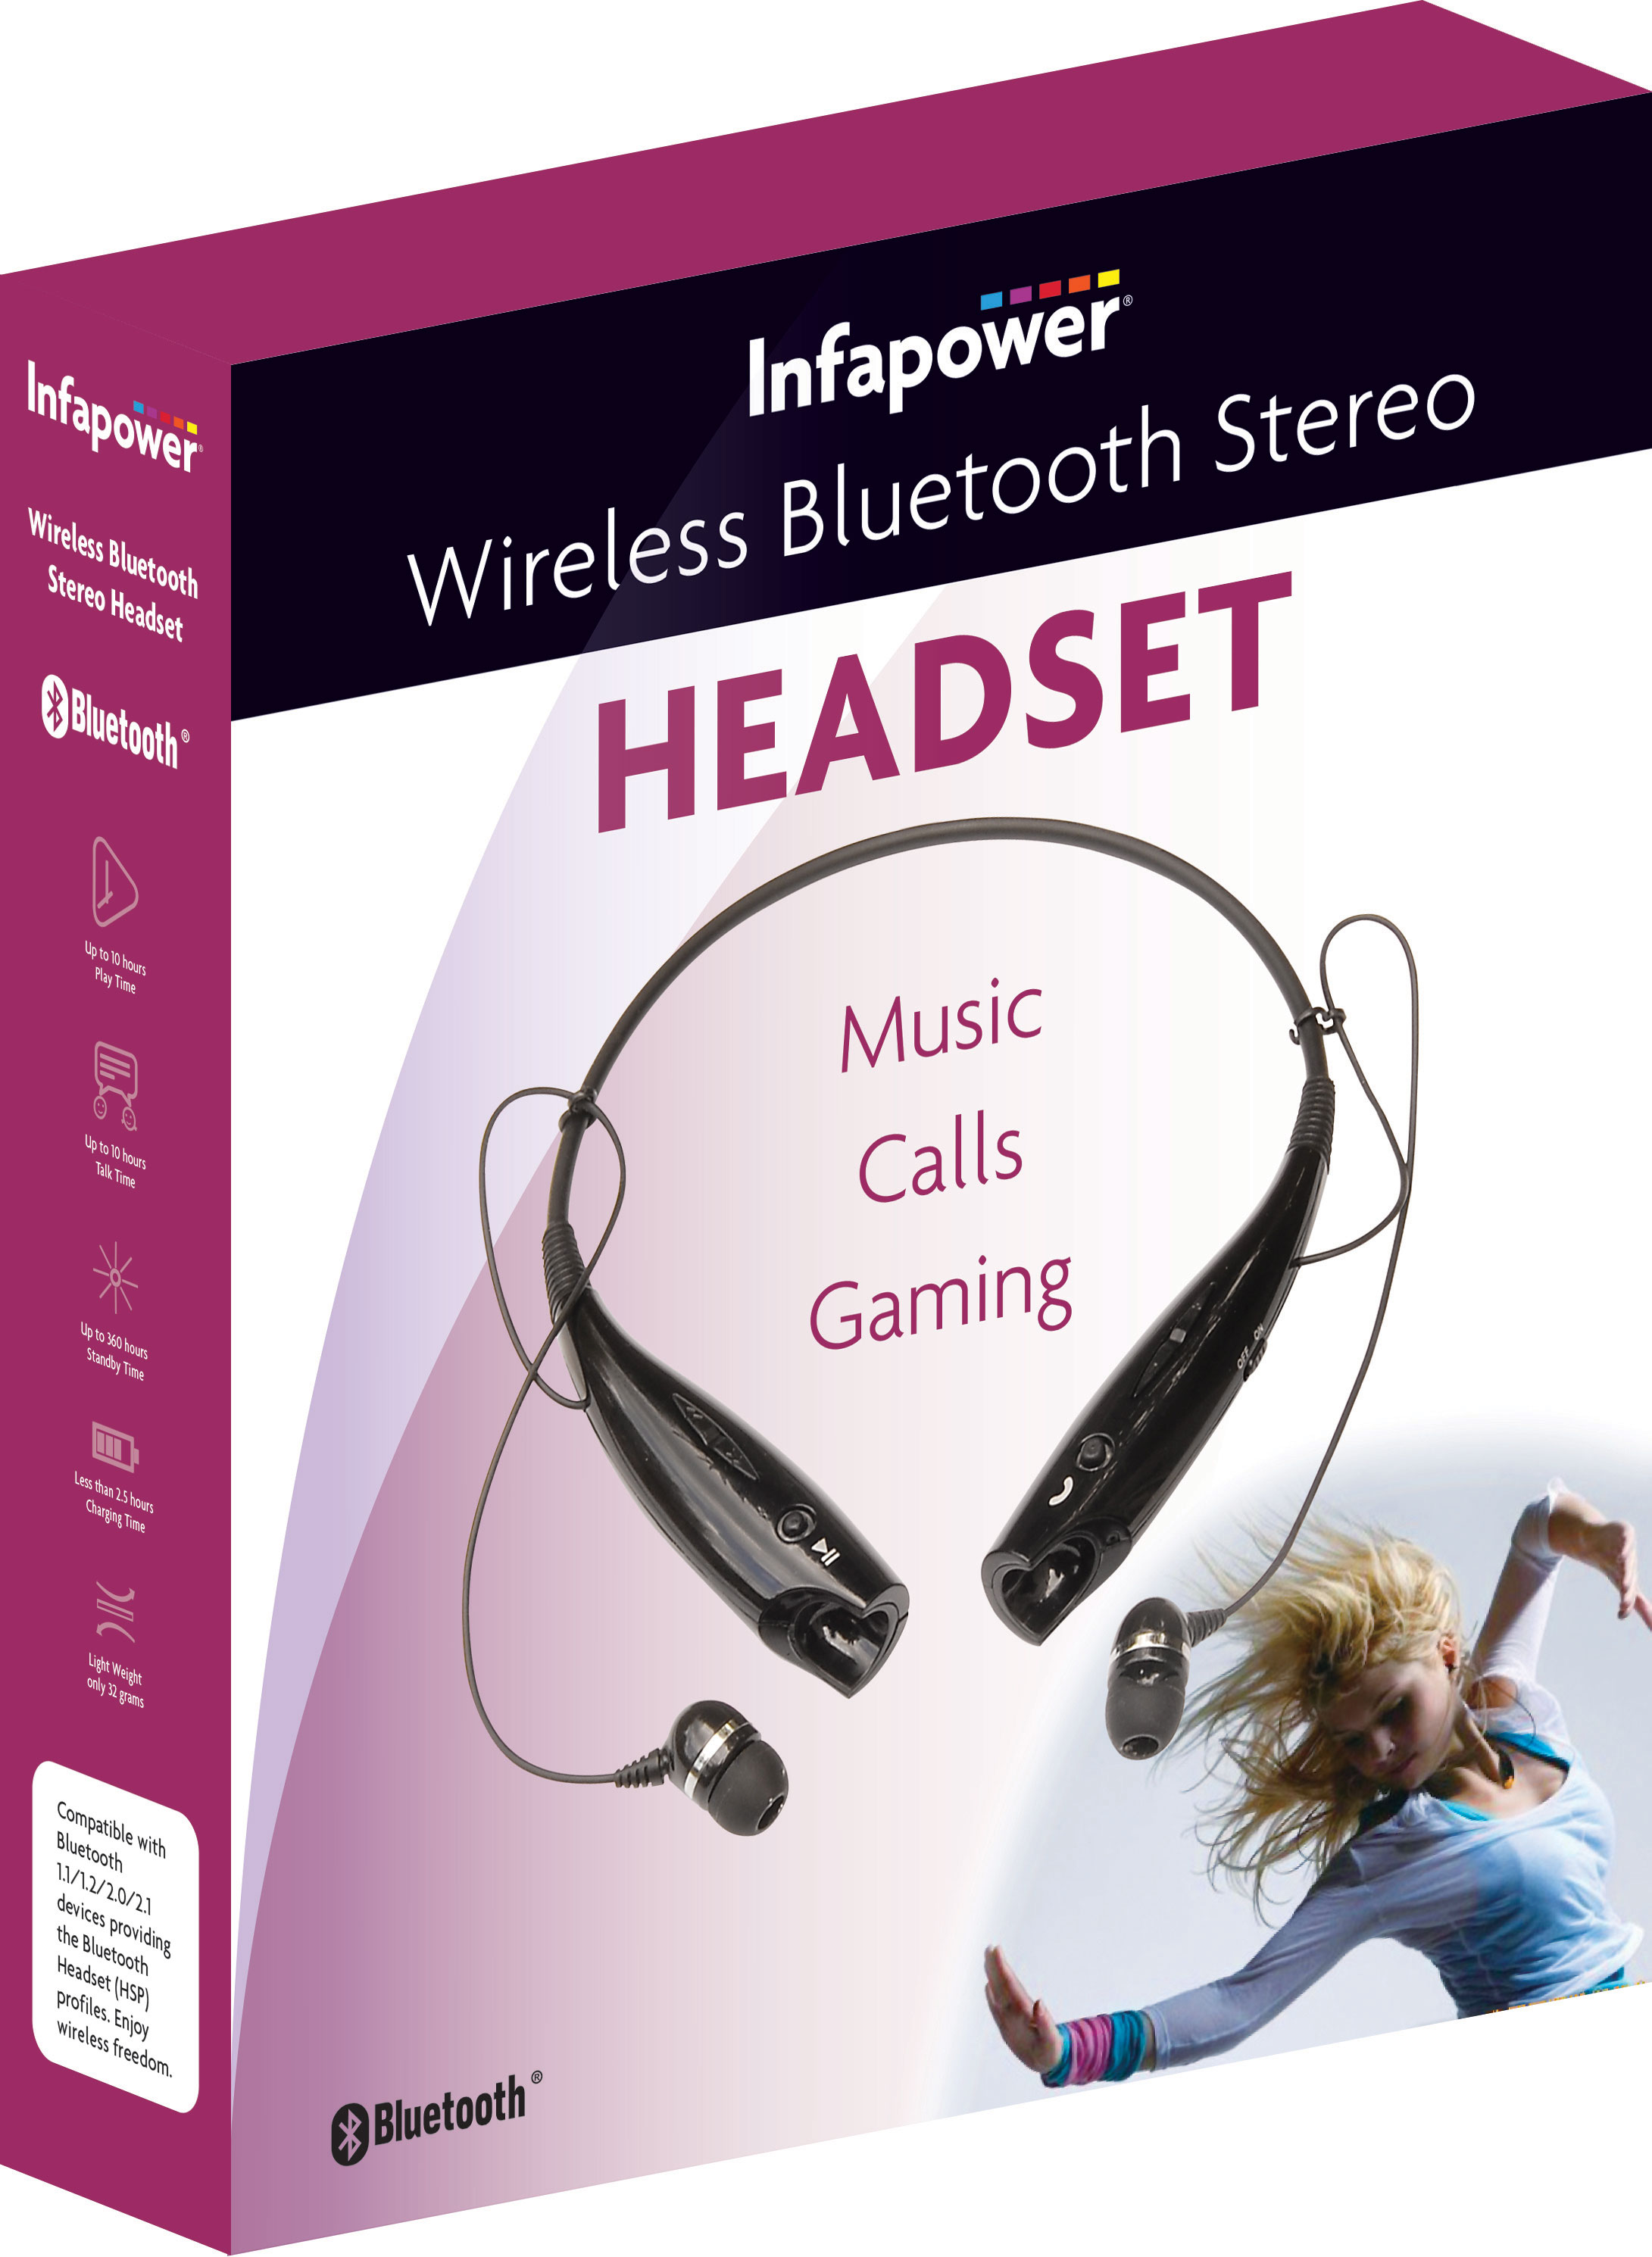 Infapower Wireless Bluetooth Headset X 304